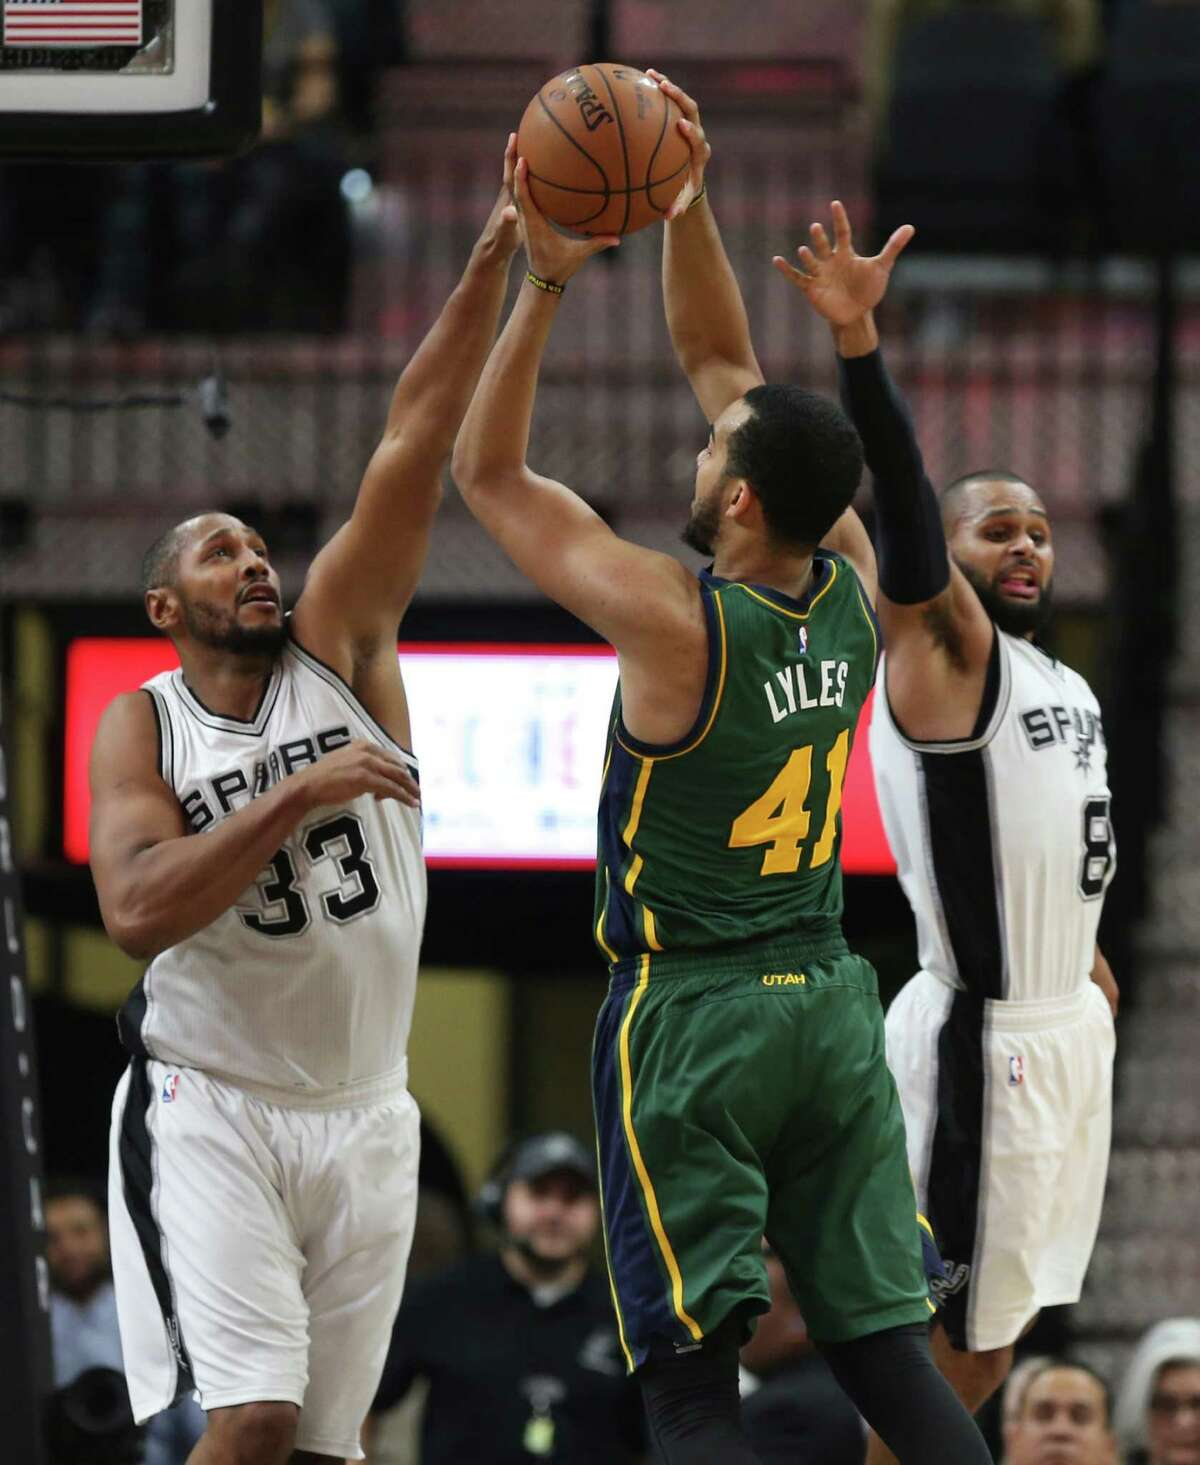 San Antonio Spurs' Boris Diaw, left, and Patty Mills defend against Utah Jazz' Trey Lyles during the second half at the AT&T Center, Wednesday, Jan. 6, 2016. The Spurs won, 123-98.